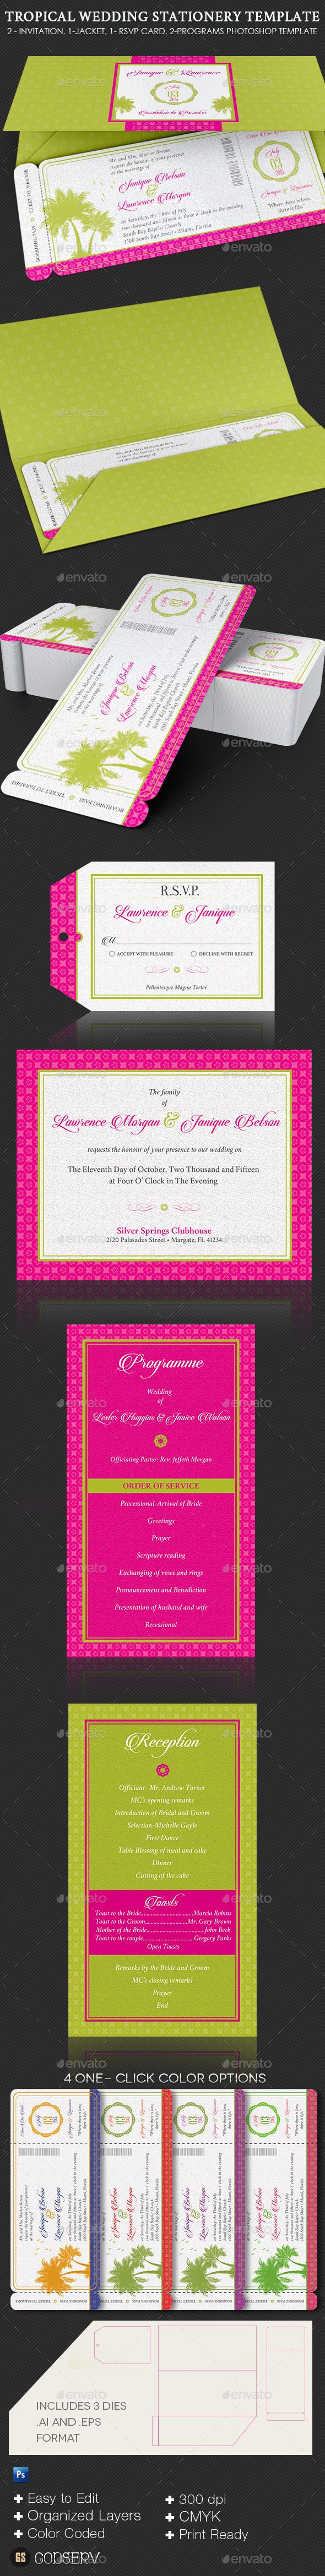 wedding invitations design template%0A Map Usa And Canada With Provinces And States